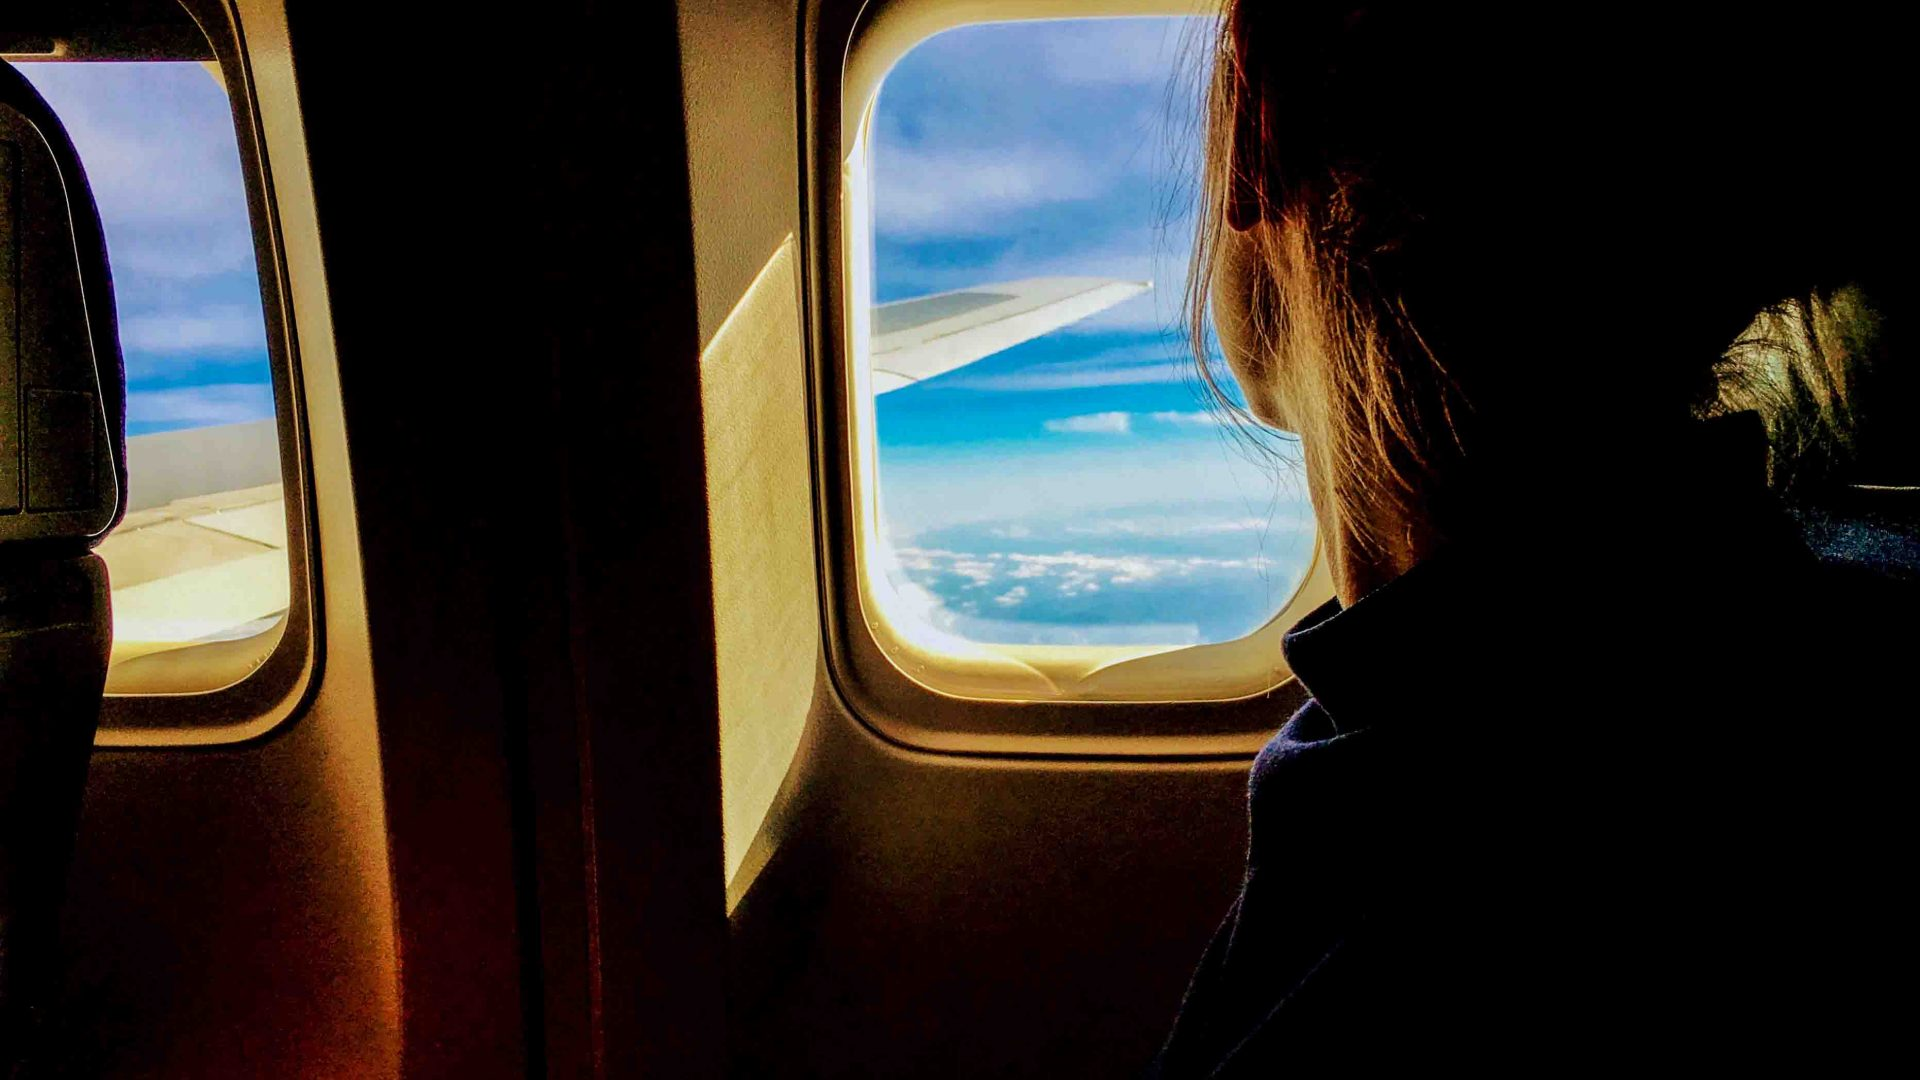 Fear of flying: A woman looks out the window of the airplane.